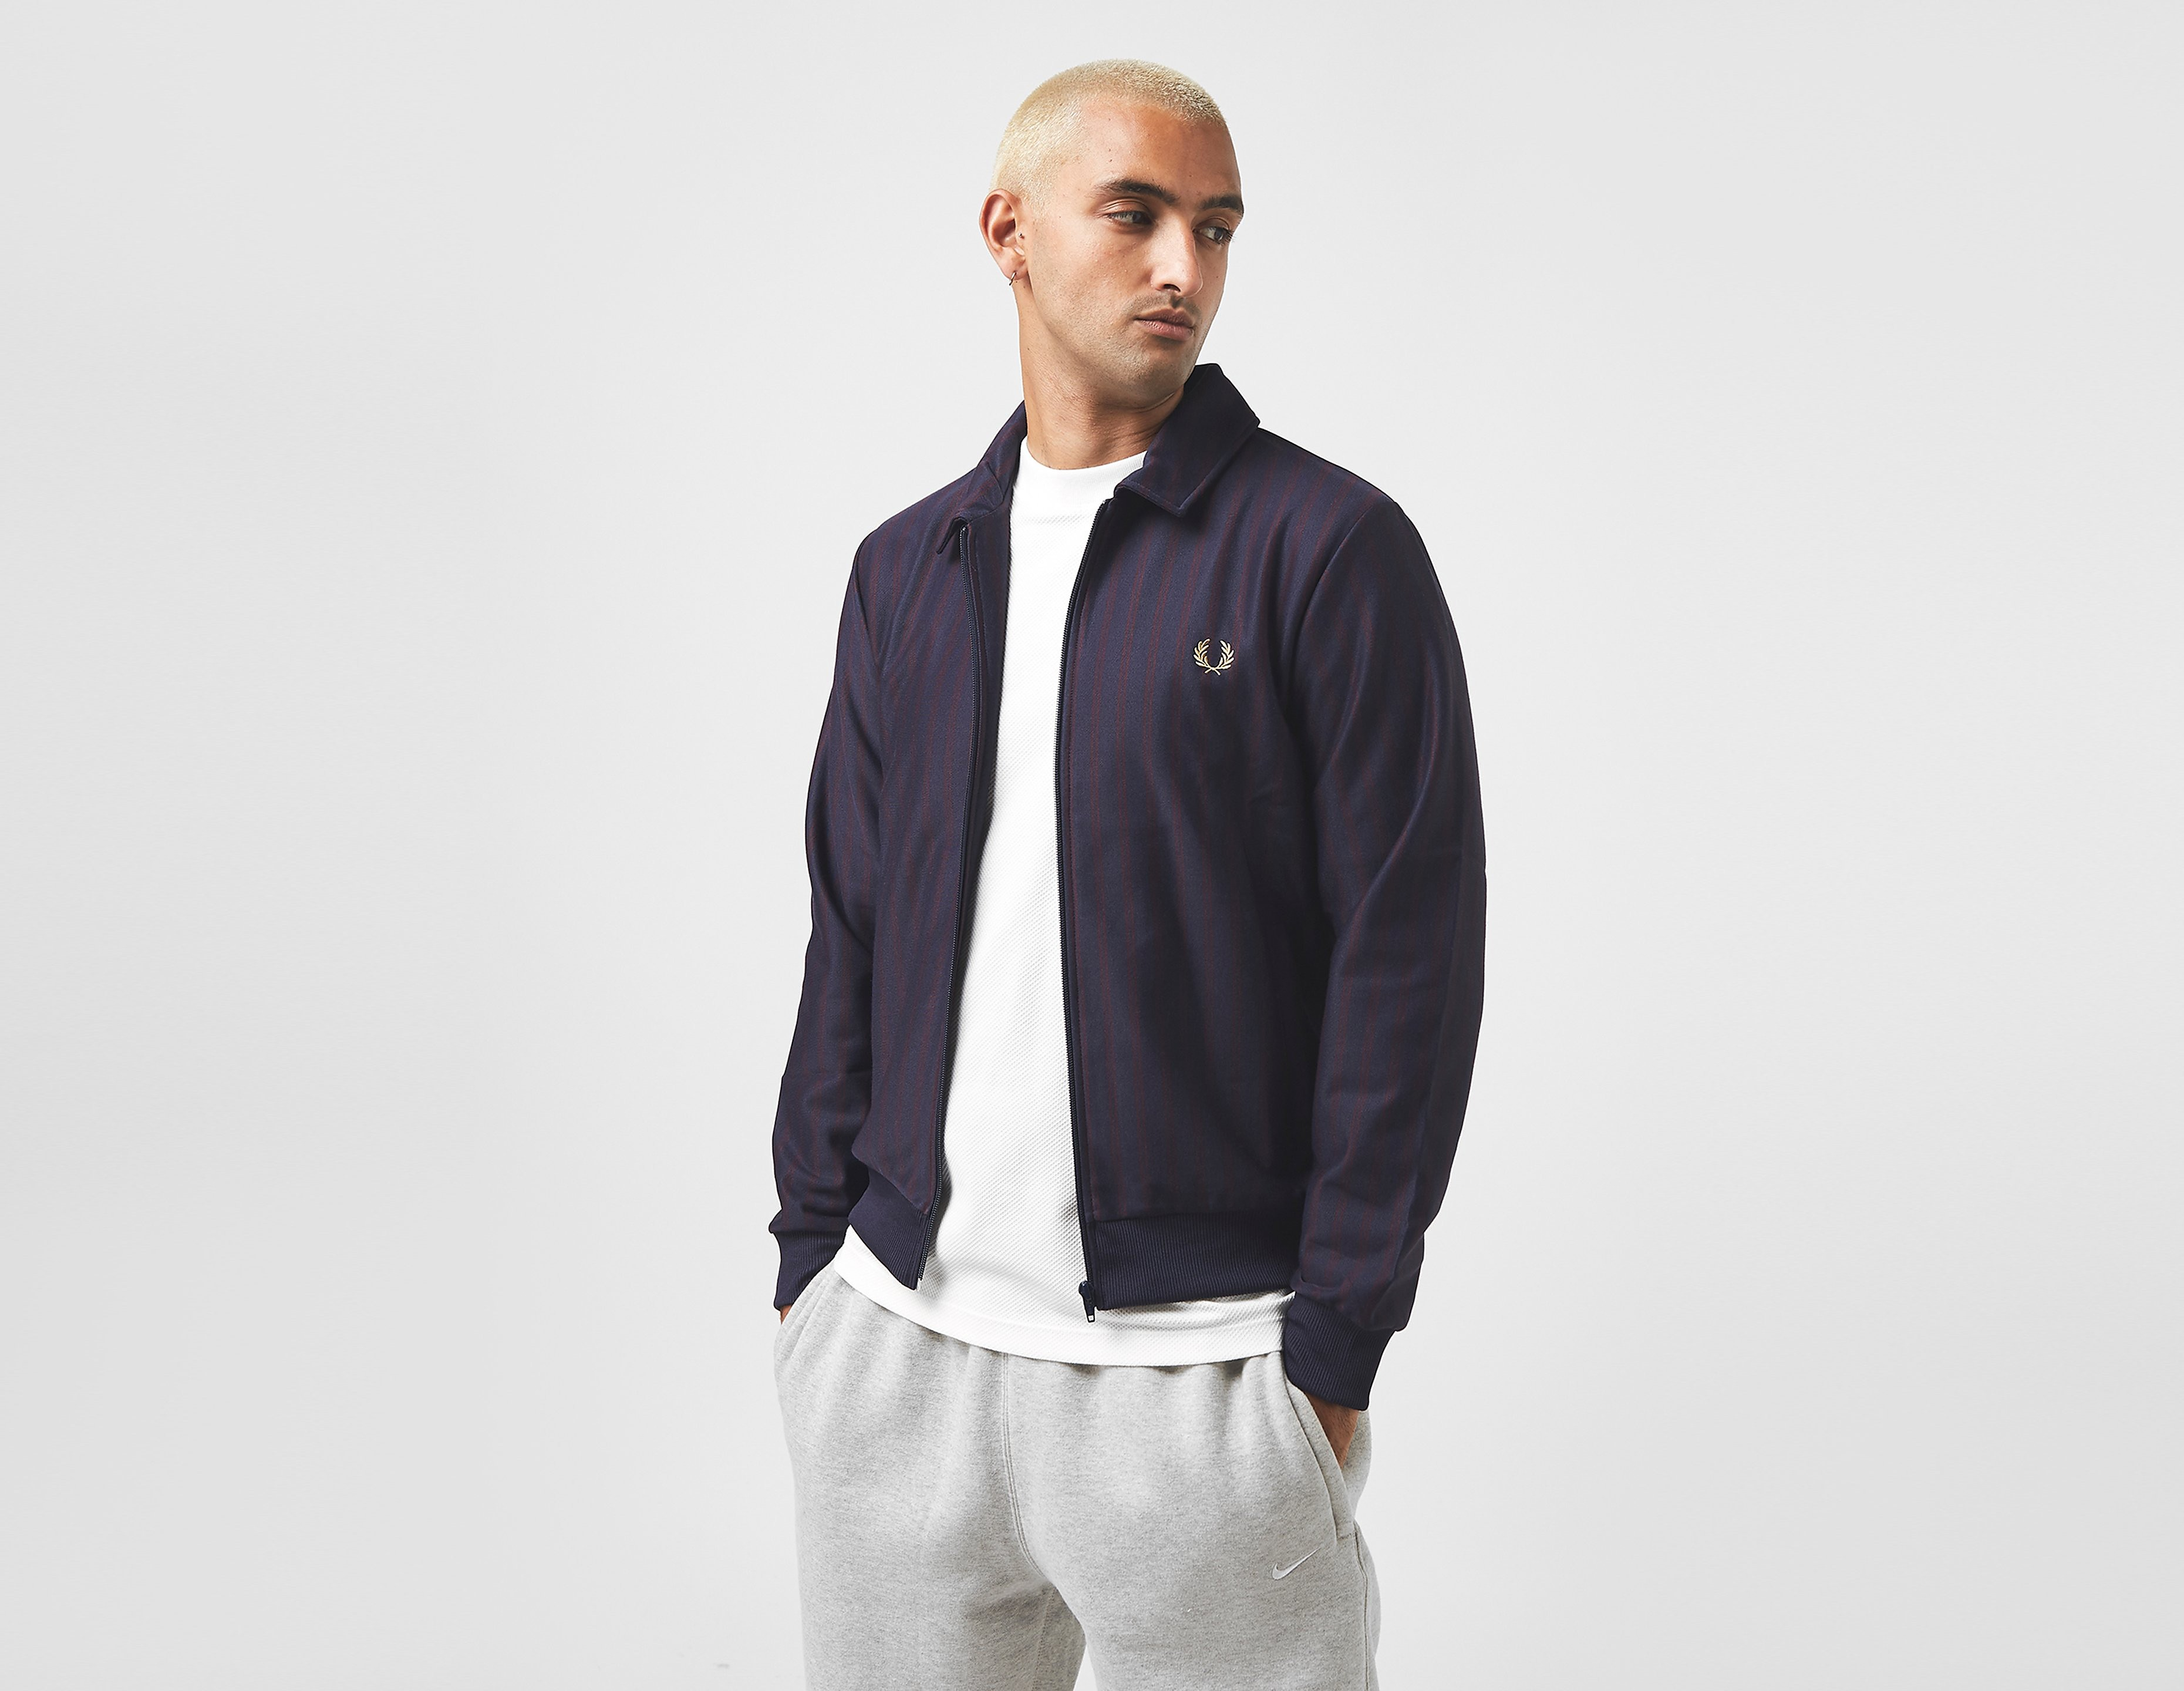 Fred Perry Striped Track Jacket, C.BL/C.BL